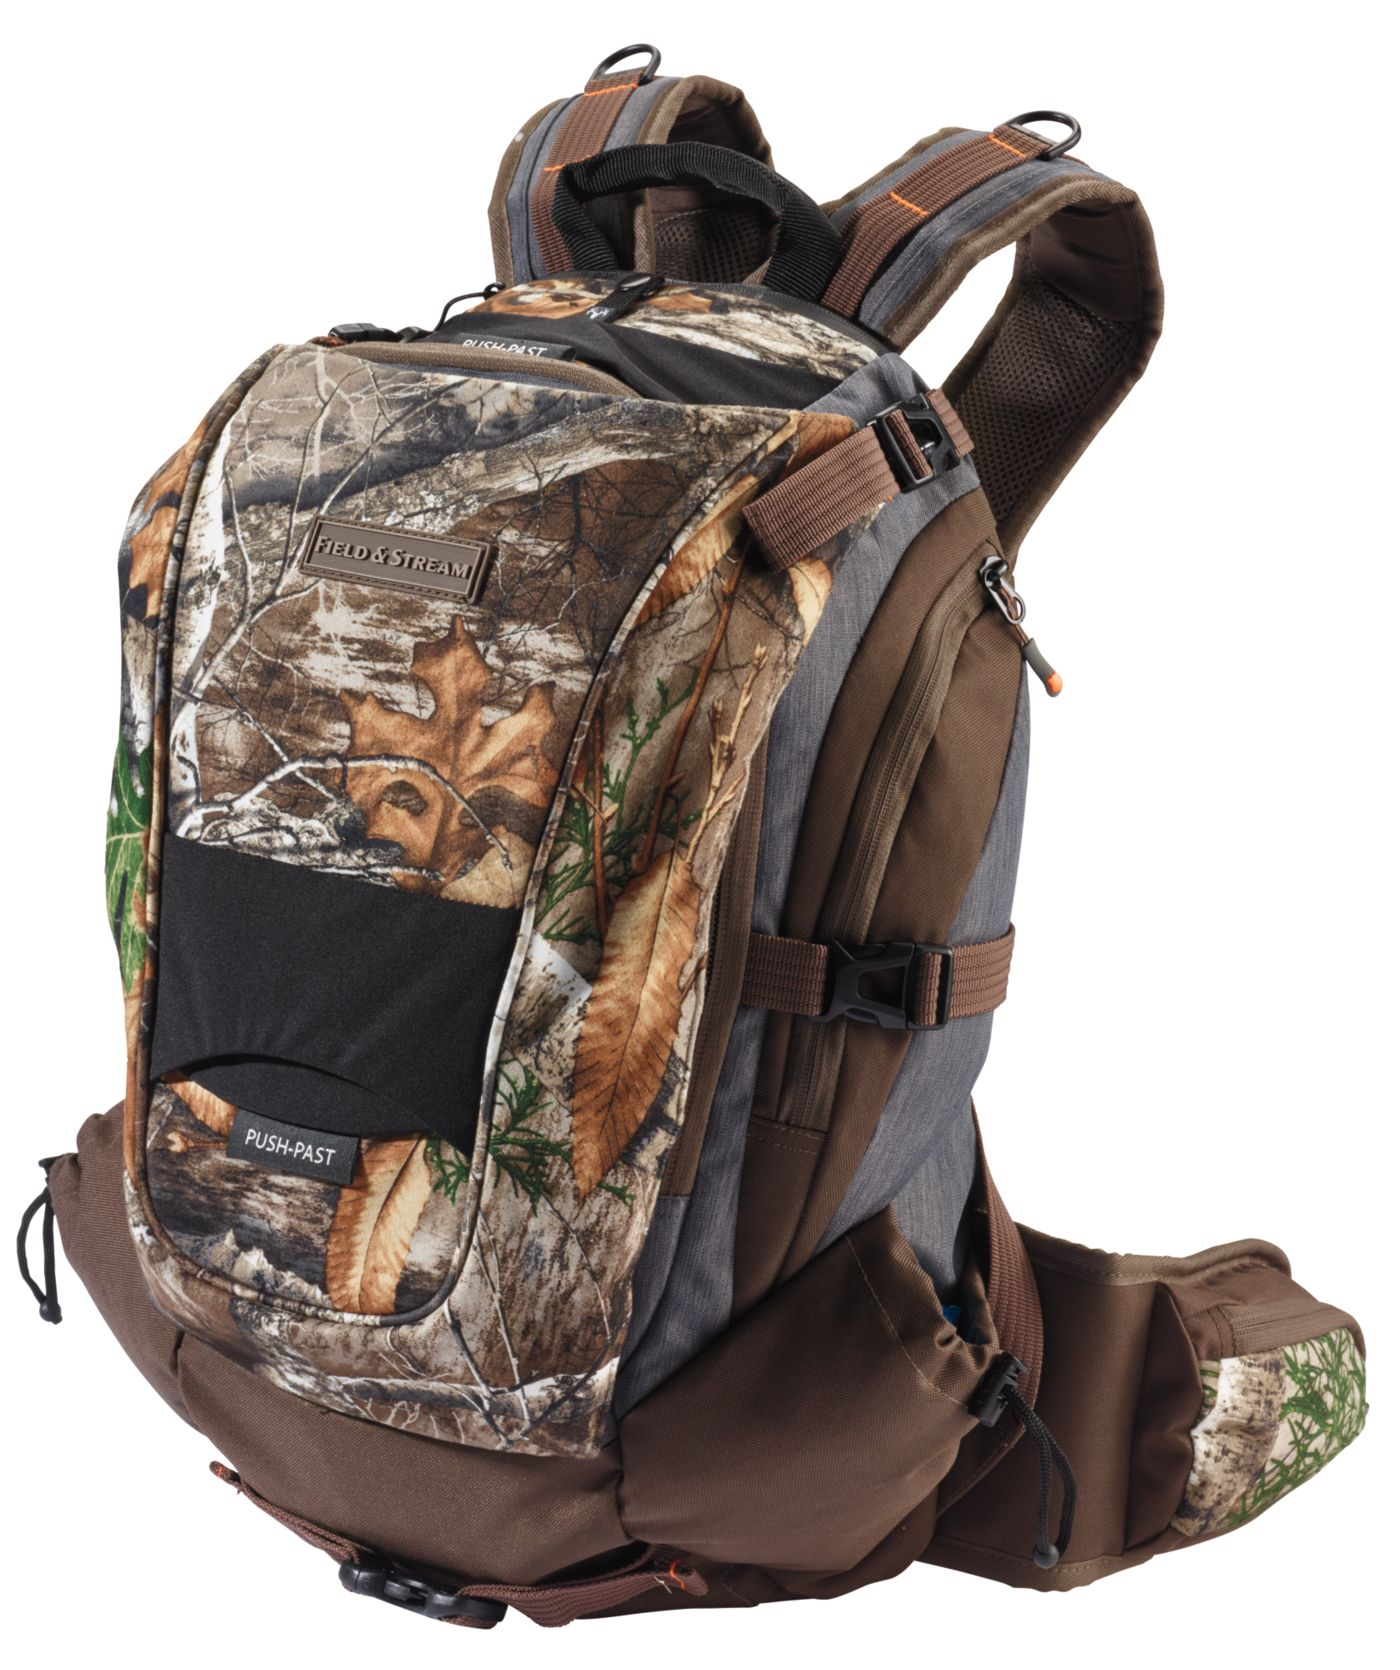 Field & Stream Ultimate Whitetail Hunting Pack